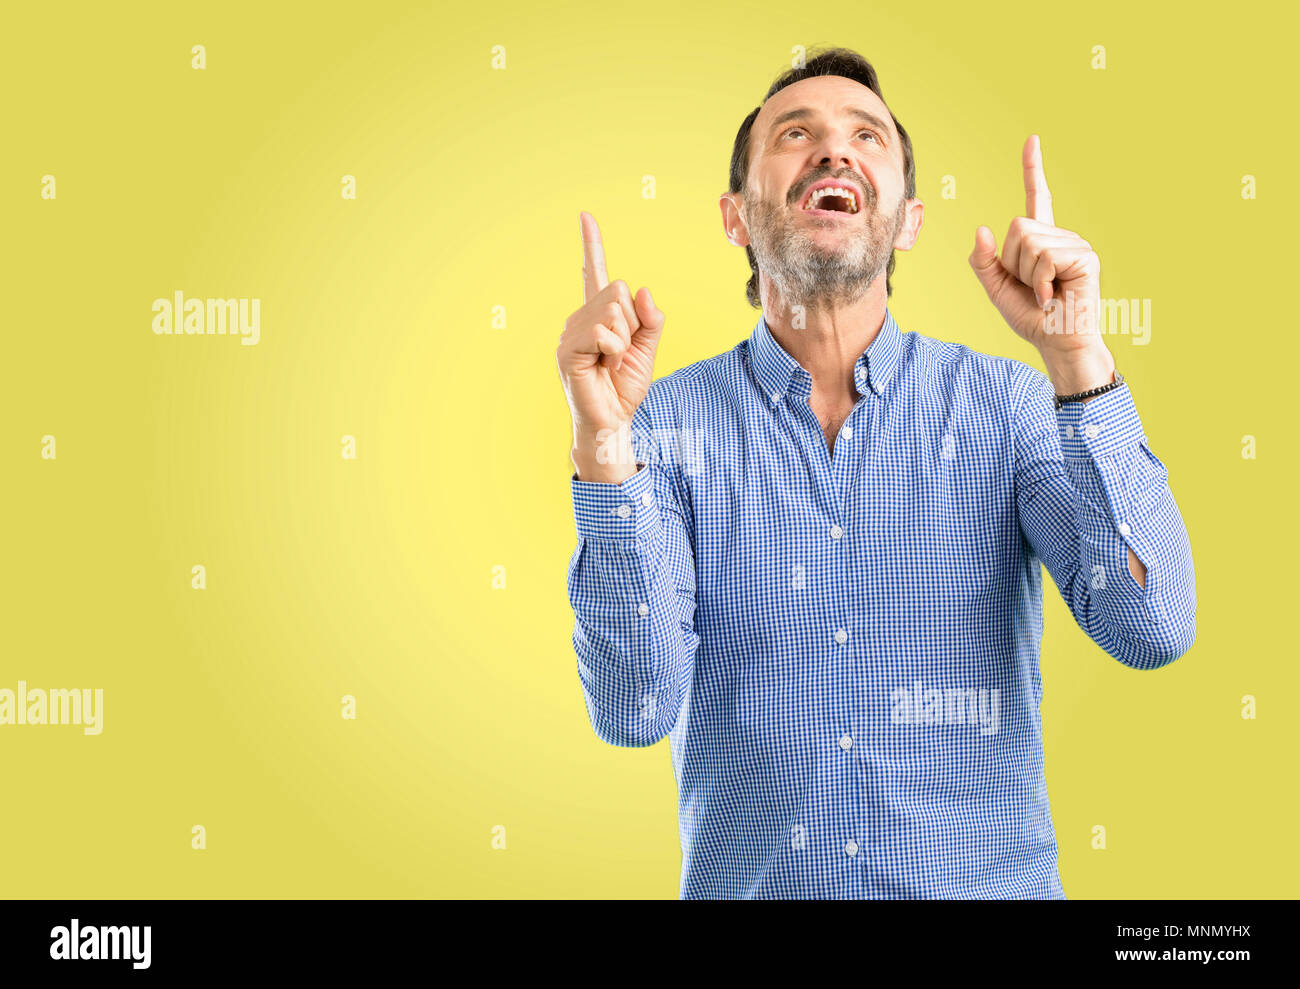 Handsome middle age man happy and surprised cheering pointing up - Stock Image